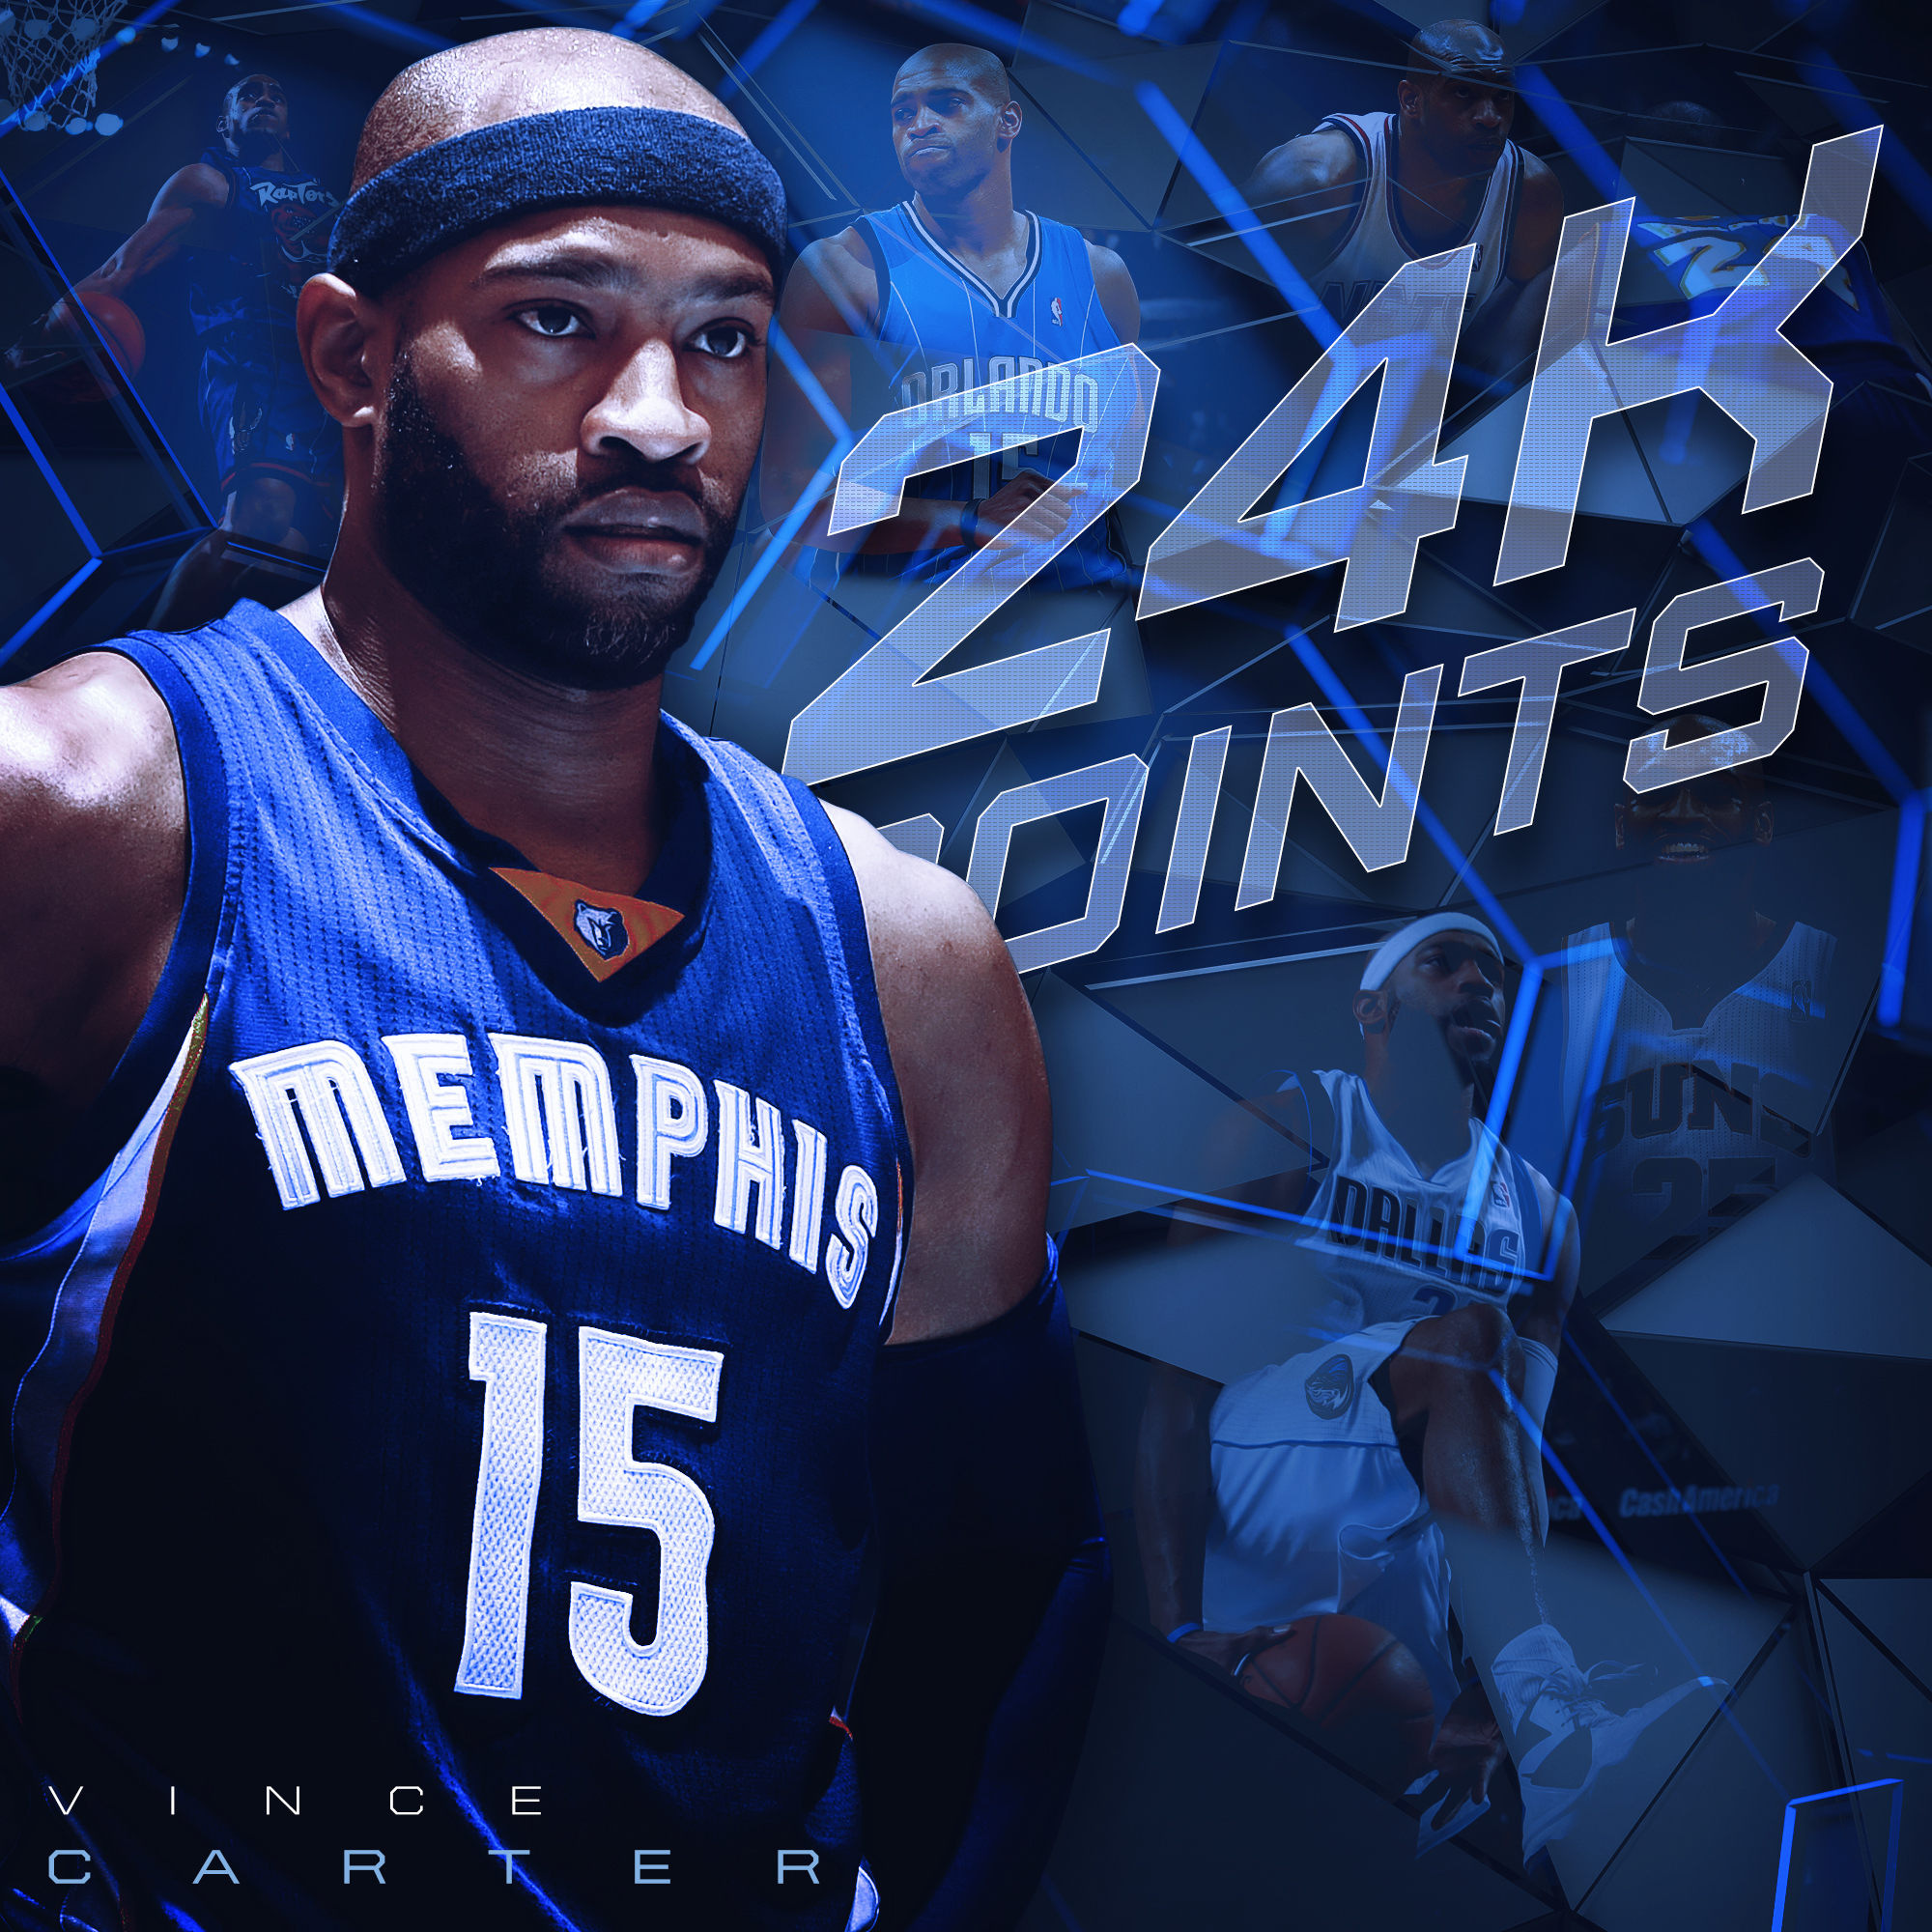 Vince Carter 24K Career Points in the NBA